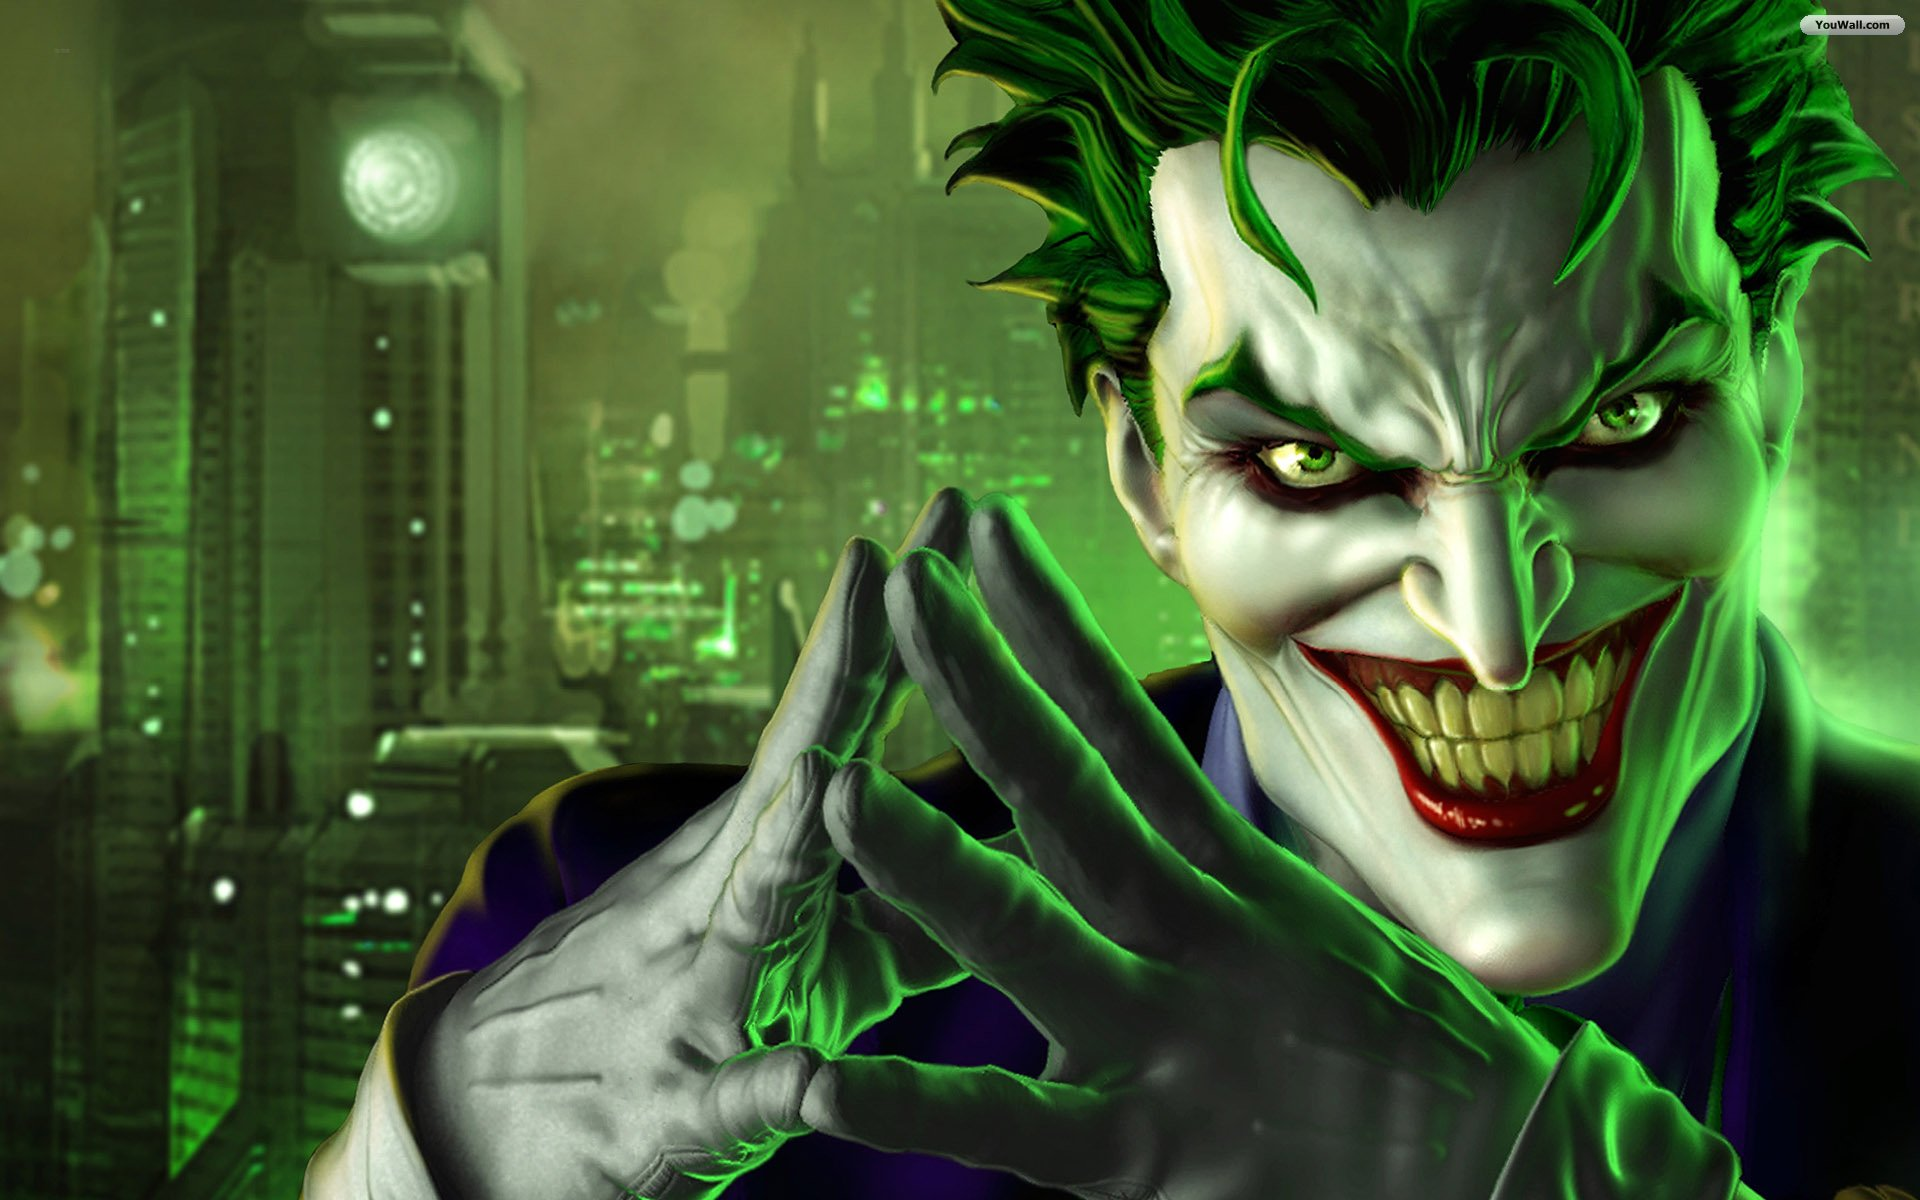 Sarcastic Joker Wallpaper   wallpaperwallpapersfree wallpaper 1920x1200